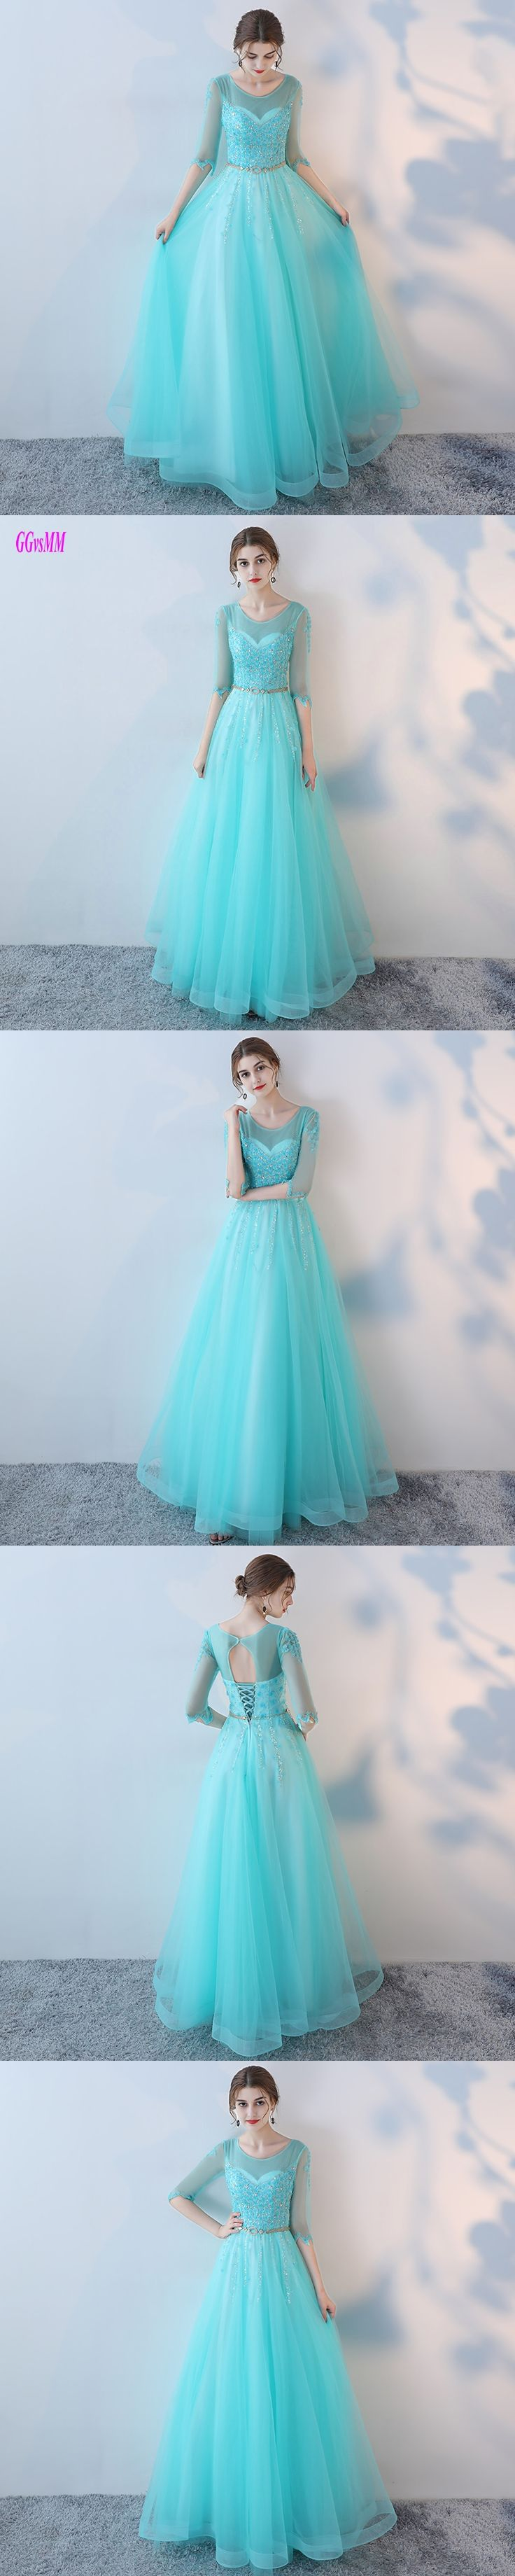 Real Photos Sexy Ice Blue Long Evening Dresses 2017 Scoop Elastic Satin Formal Dress Tulle Appliques Lace-Up Evening Party Gowns